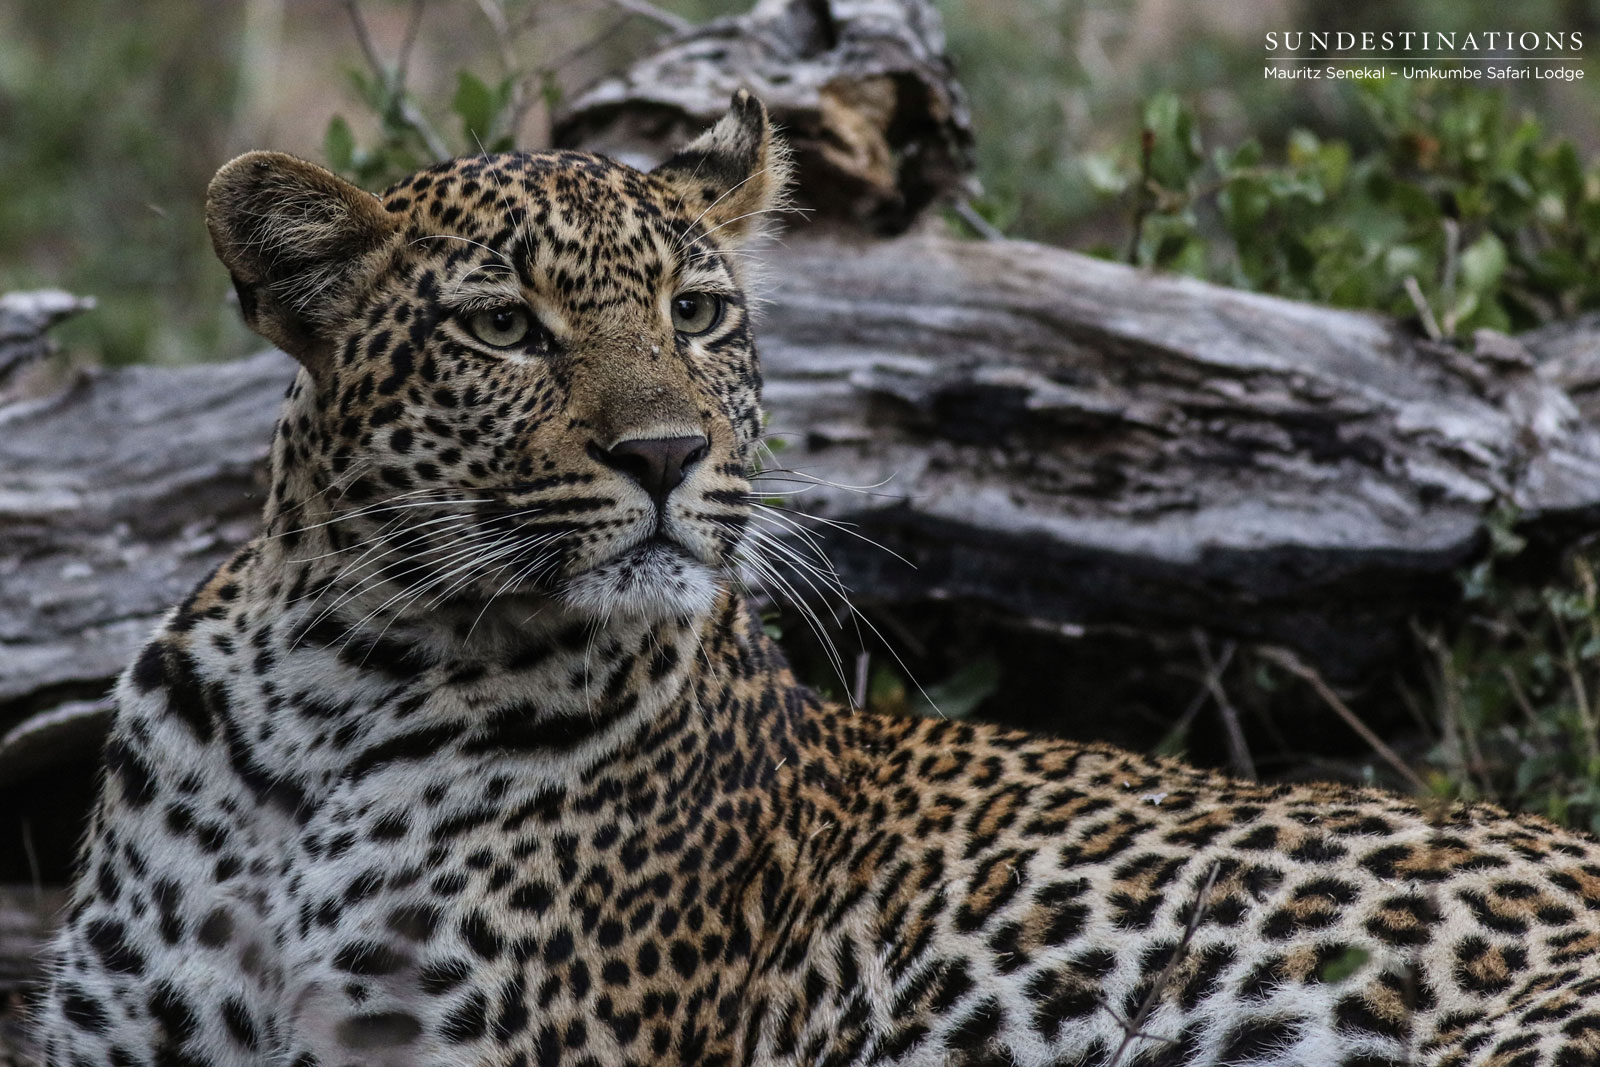 Portraits of Umkumbe's Leopardess Hlarulini